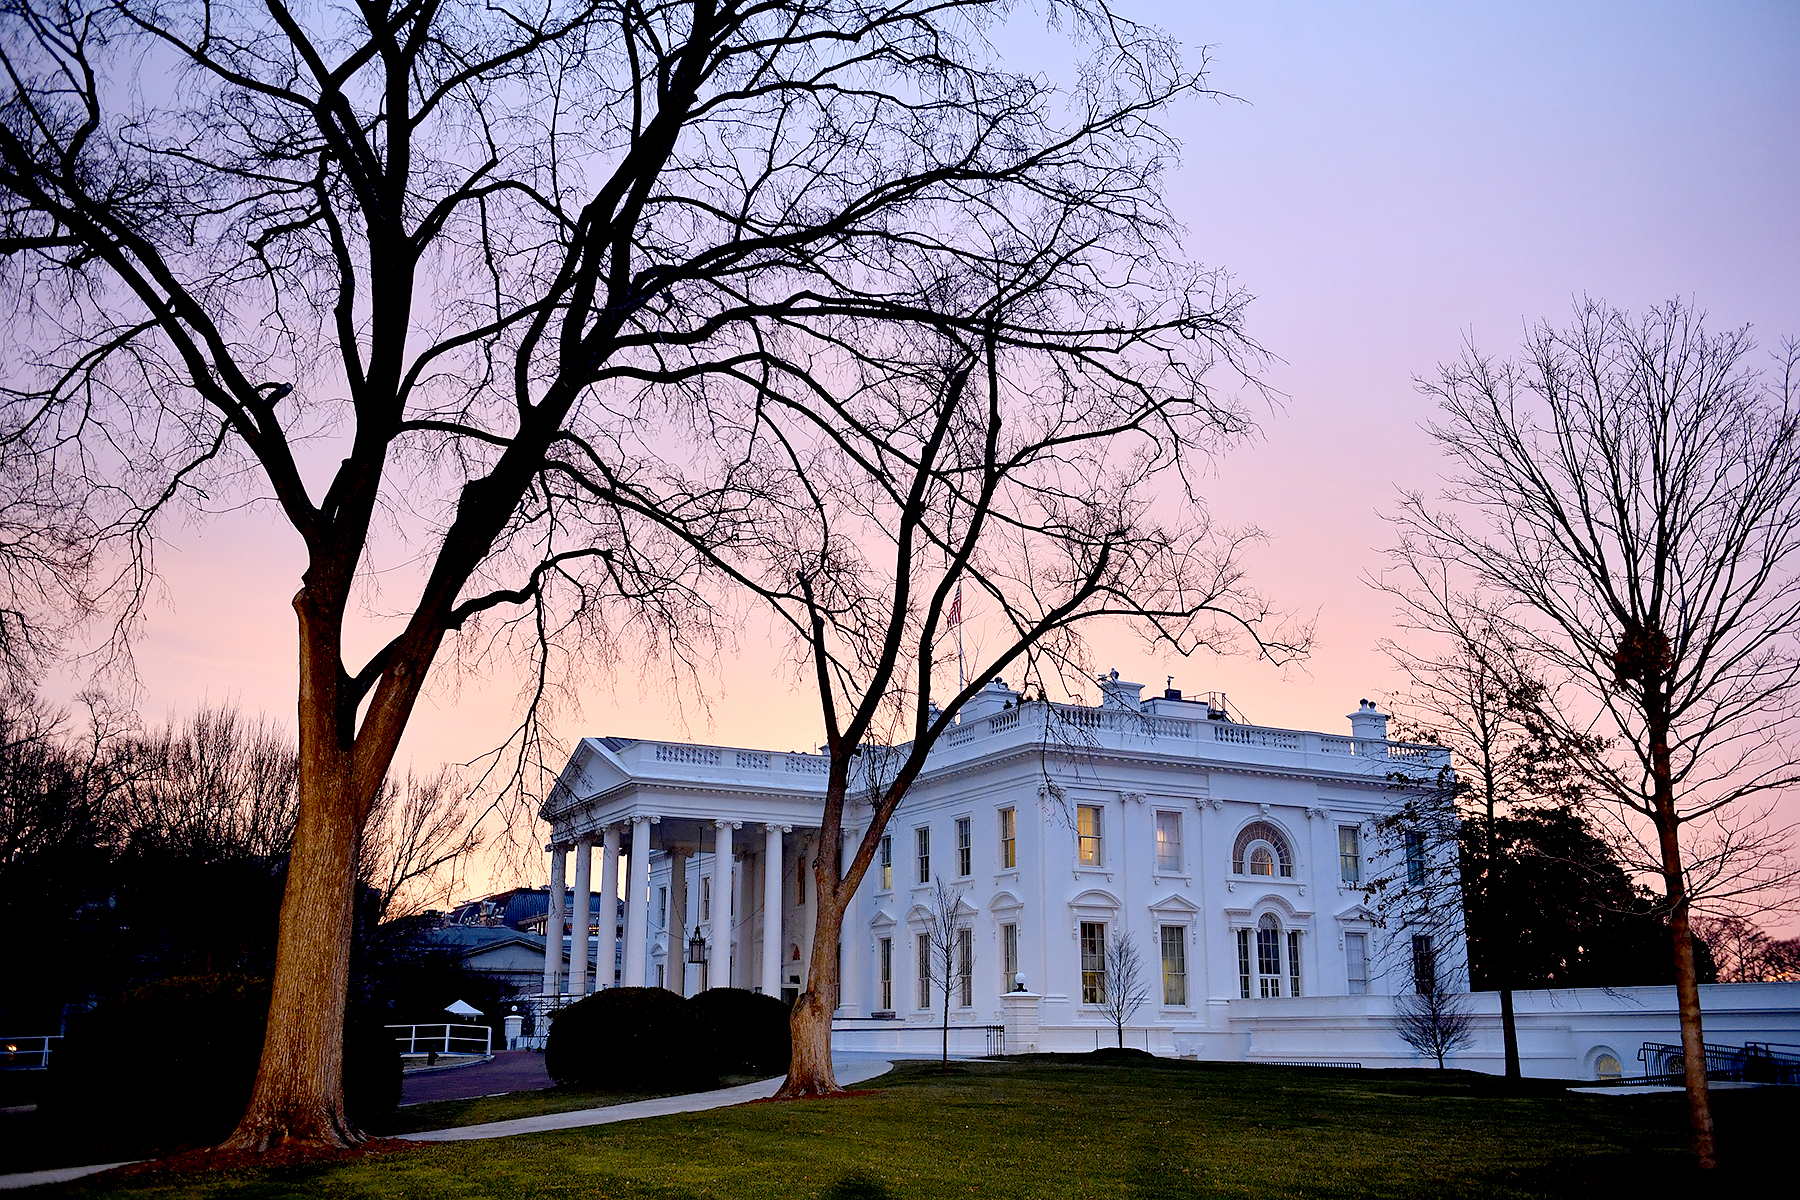 Dawn breaks behind the White House as the nation prepares for the inauguration of President-elect Donald Trump on January 20, 2017 in Washington, D.C.